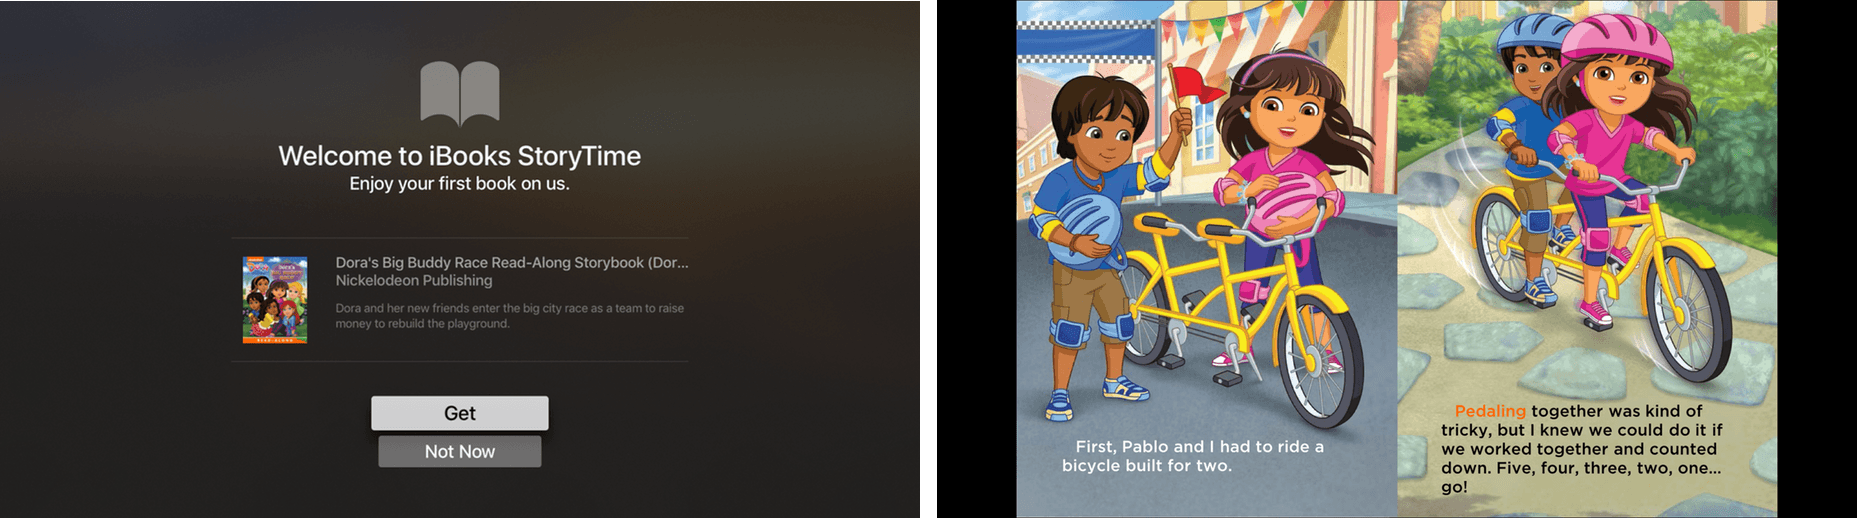 iBooks StoryTime comes with a free Dora the Explorer book.